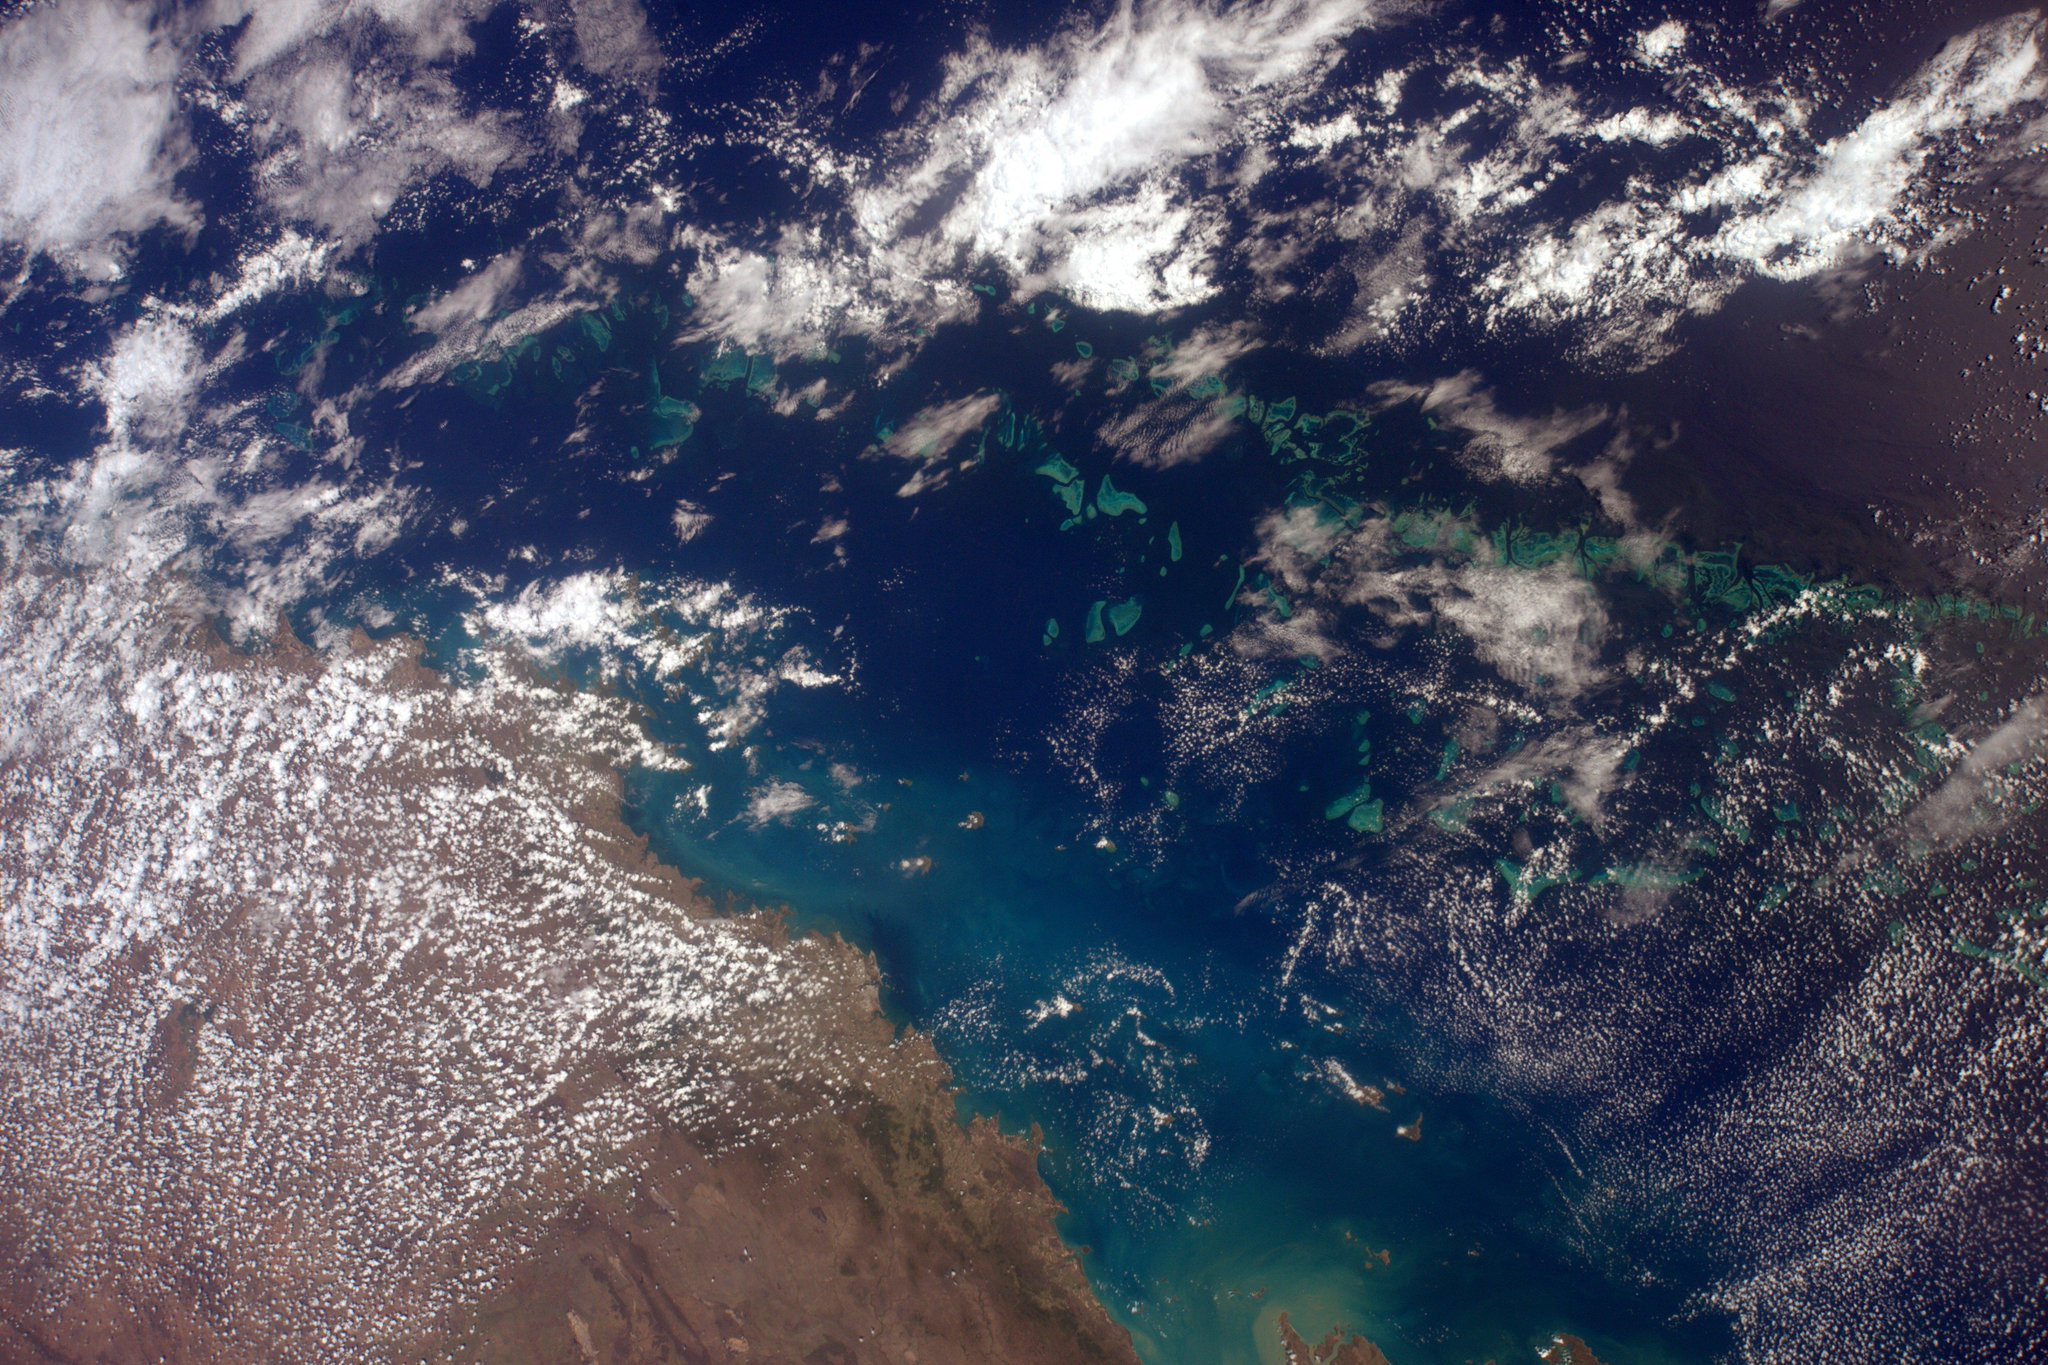 And then this came into view. Amazing! Part of the Great Barrier Reef in the Coral Sea. #Australia #HelloEarth http://t.co/uPRiy2x46i